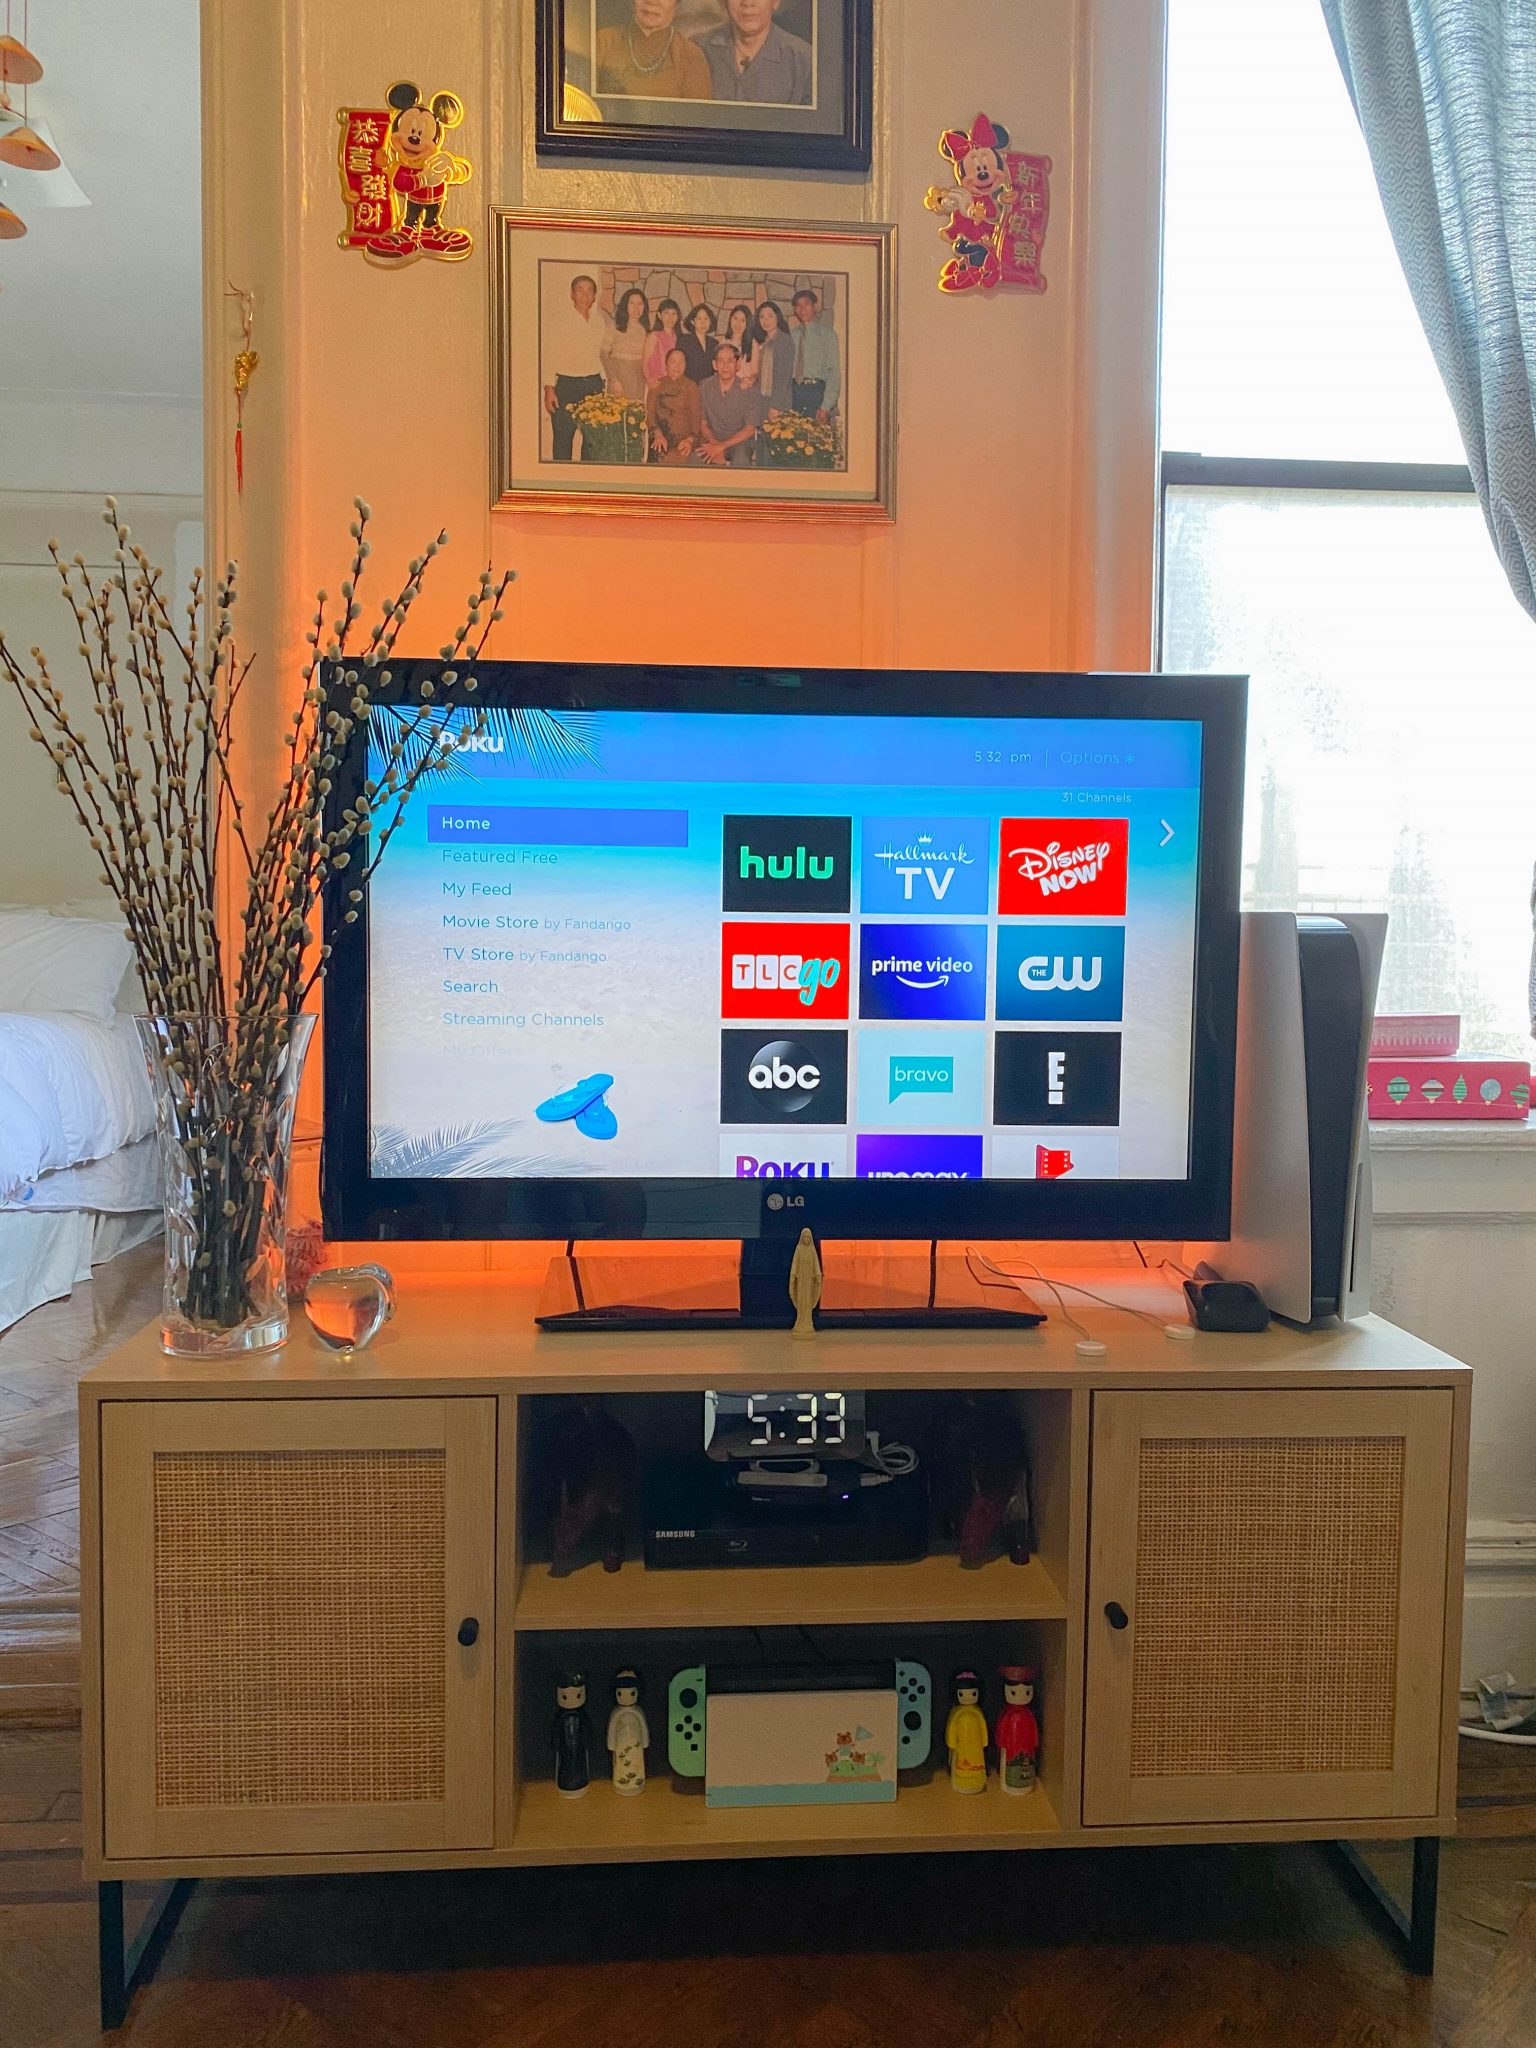 Life Lately July 2021 by Basically A Mess (photo of a Nathan James TV stand in a small apartment decor)